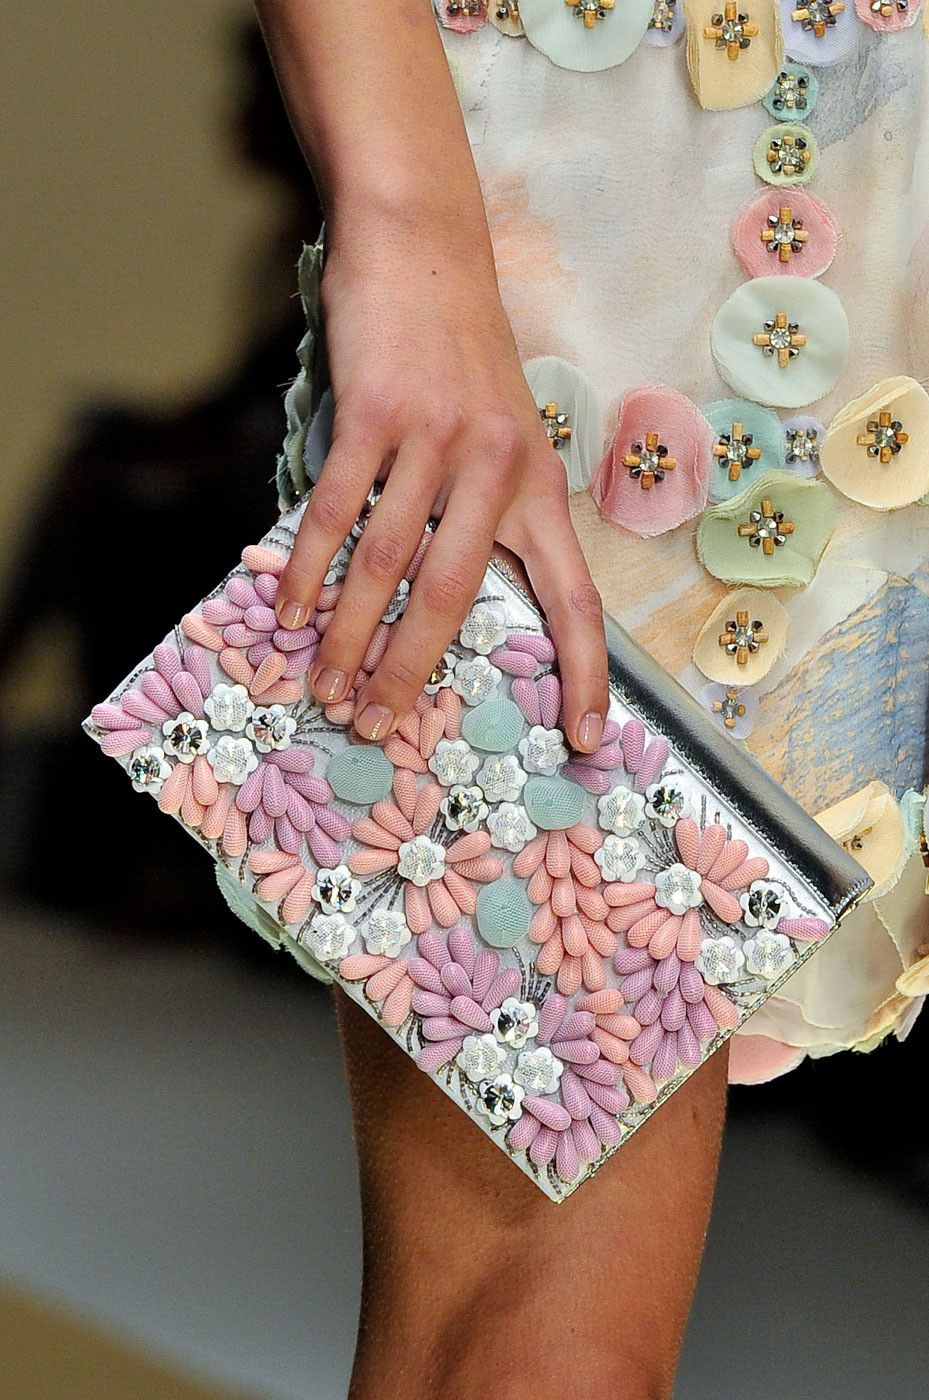 I Like The Abstract Flower Dress Detail Laura Biagiotti Milan Spring 2012 Cartera De Mano Carteras Y Bolsos Vestidos De Fiesta Para Niñas